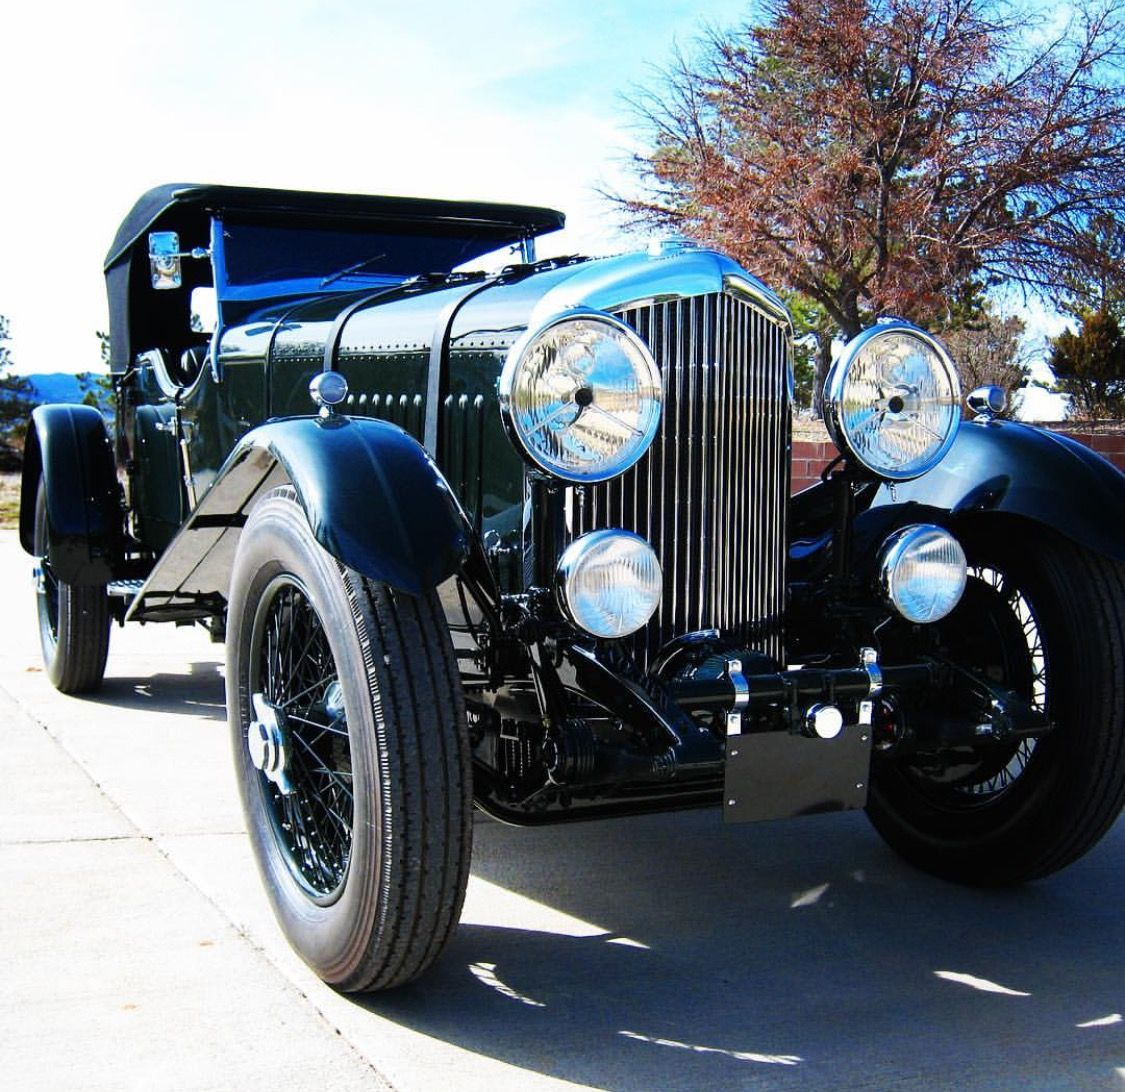 A Gorgeous 1931 Bentley We Restored At Restore Cars https://youtu.be ...